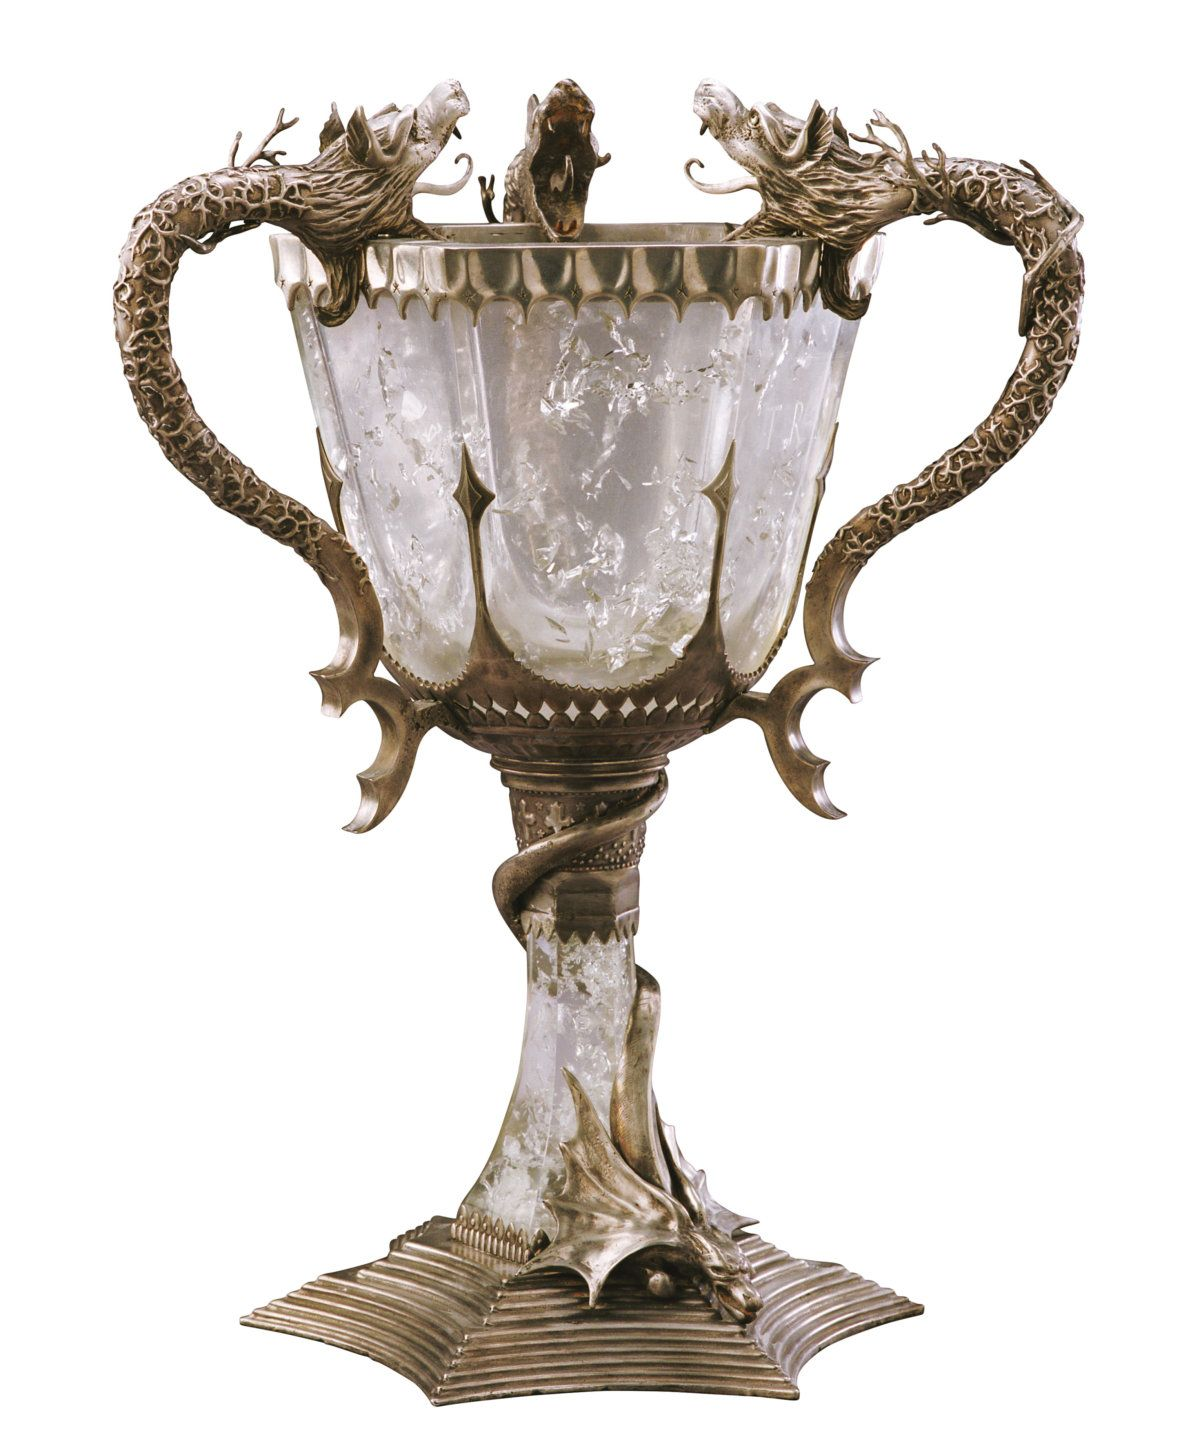 A trophy rewarded to those who win the Triwizard Tournament.